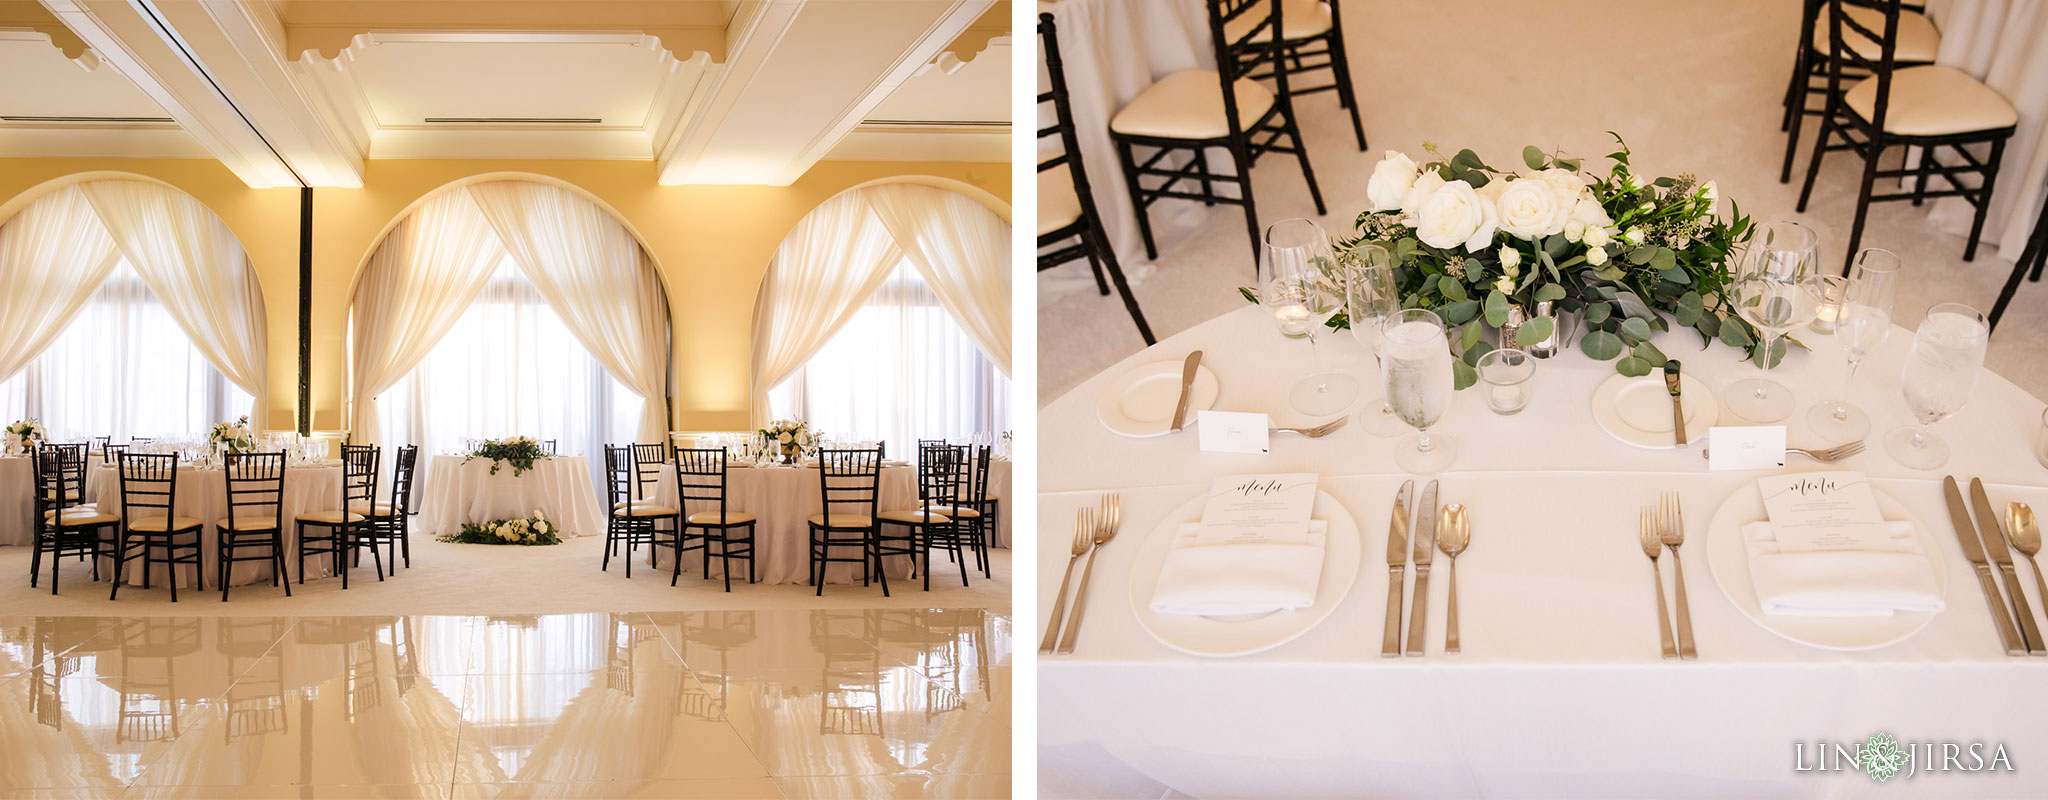 36 hyatt regency huntington beach wedding photography